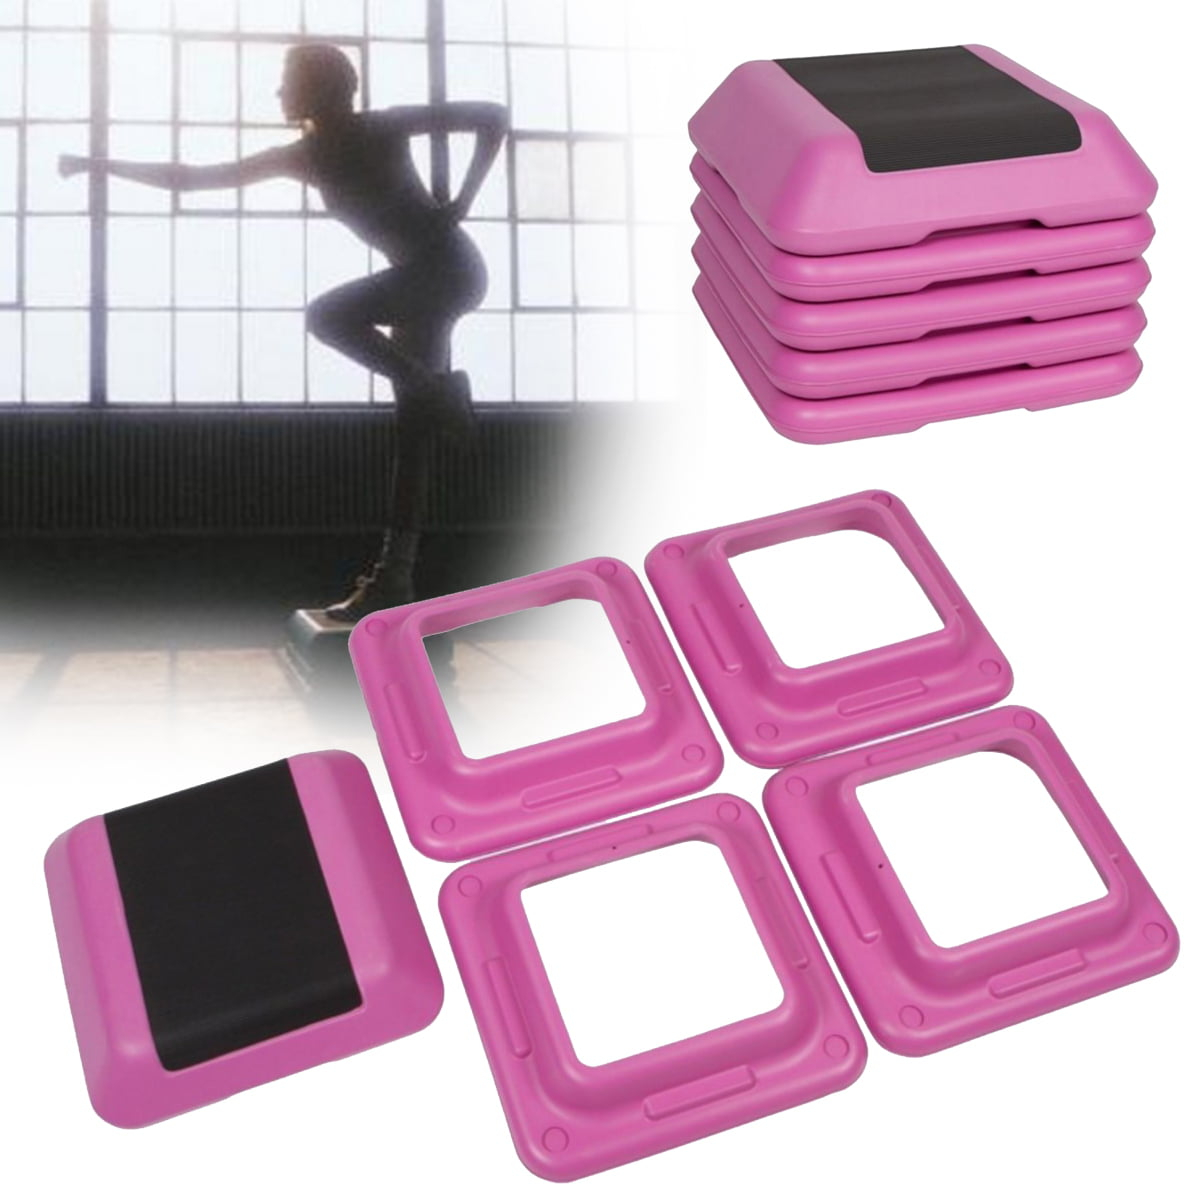 16/'/' Aerobic Step 4 Risers Fitness Exercise Stepper Cardio Workout Pedals